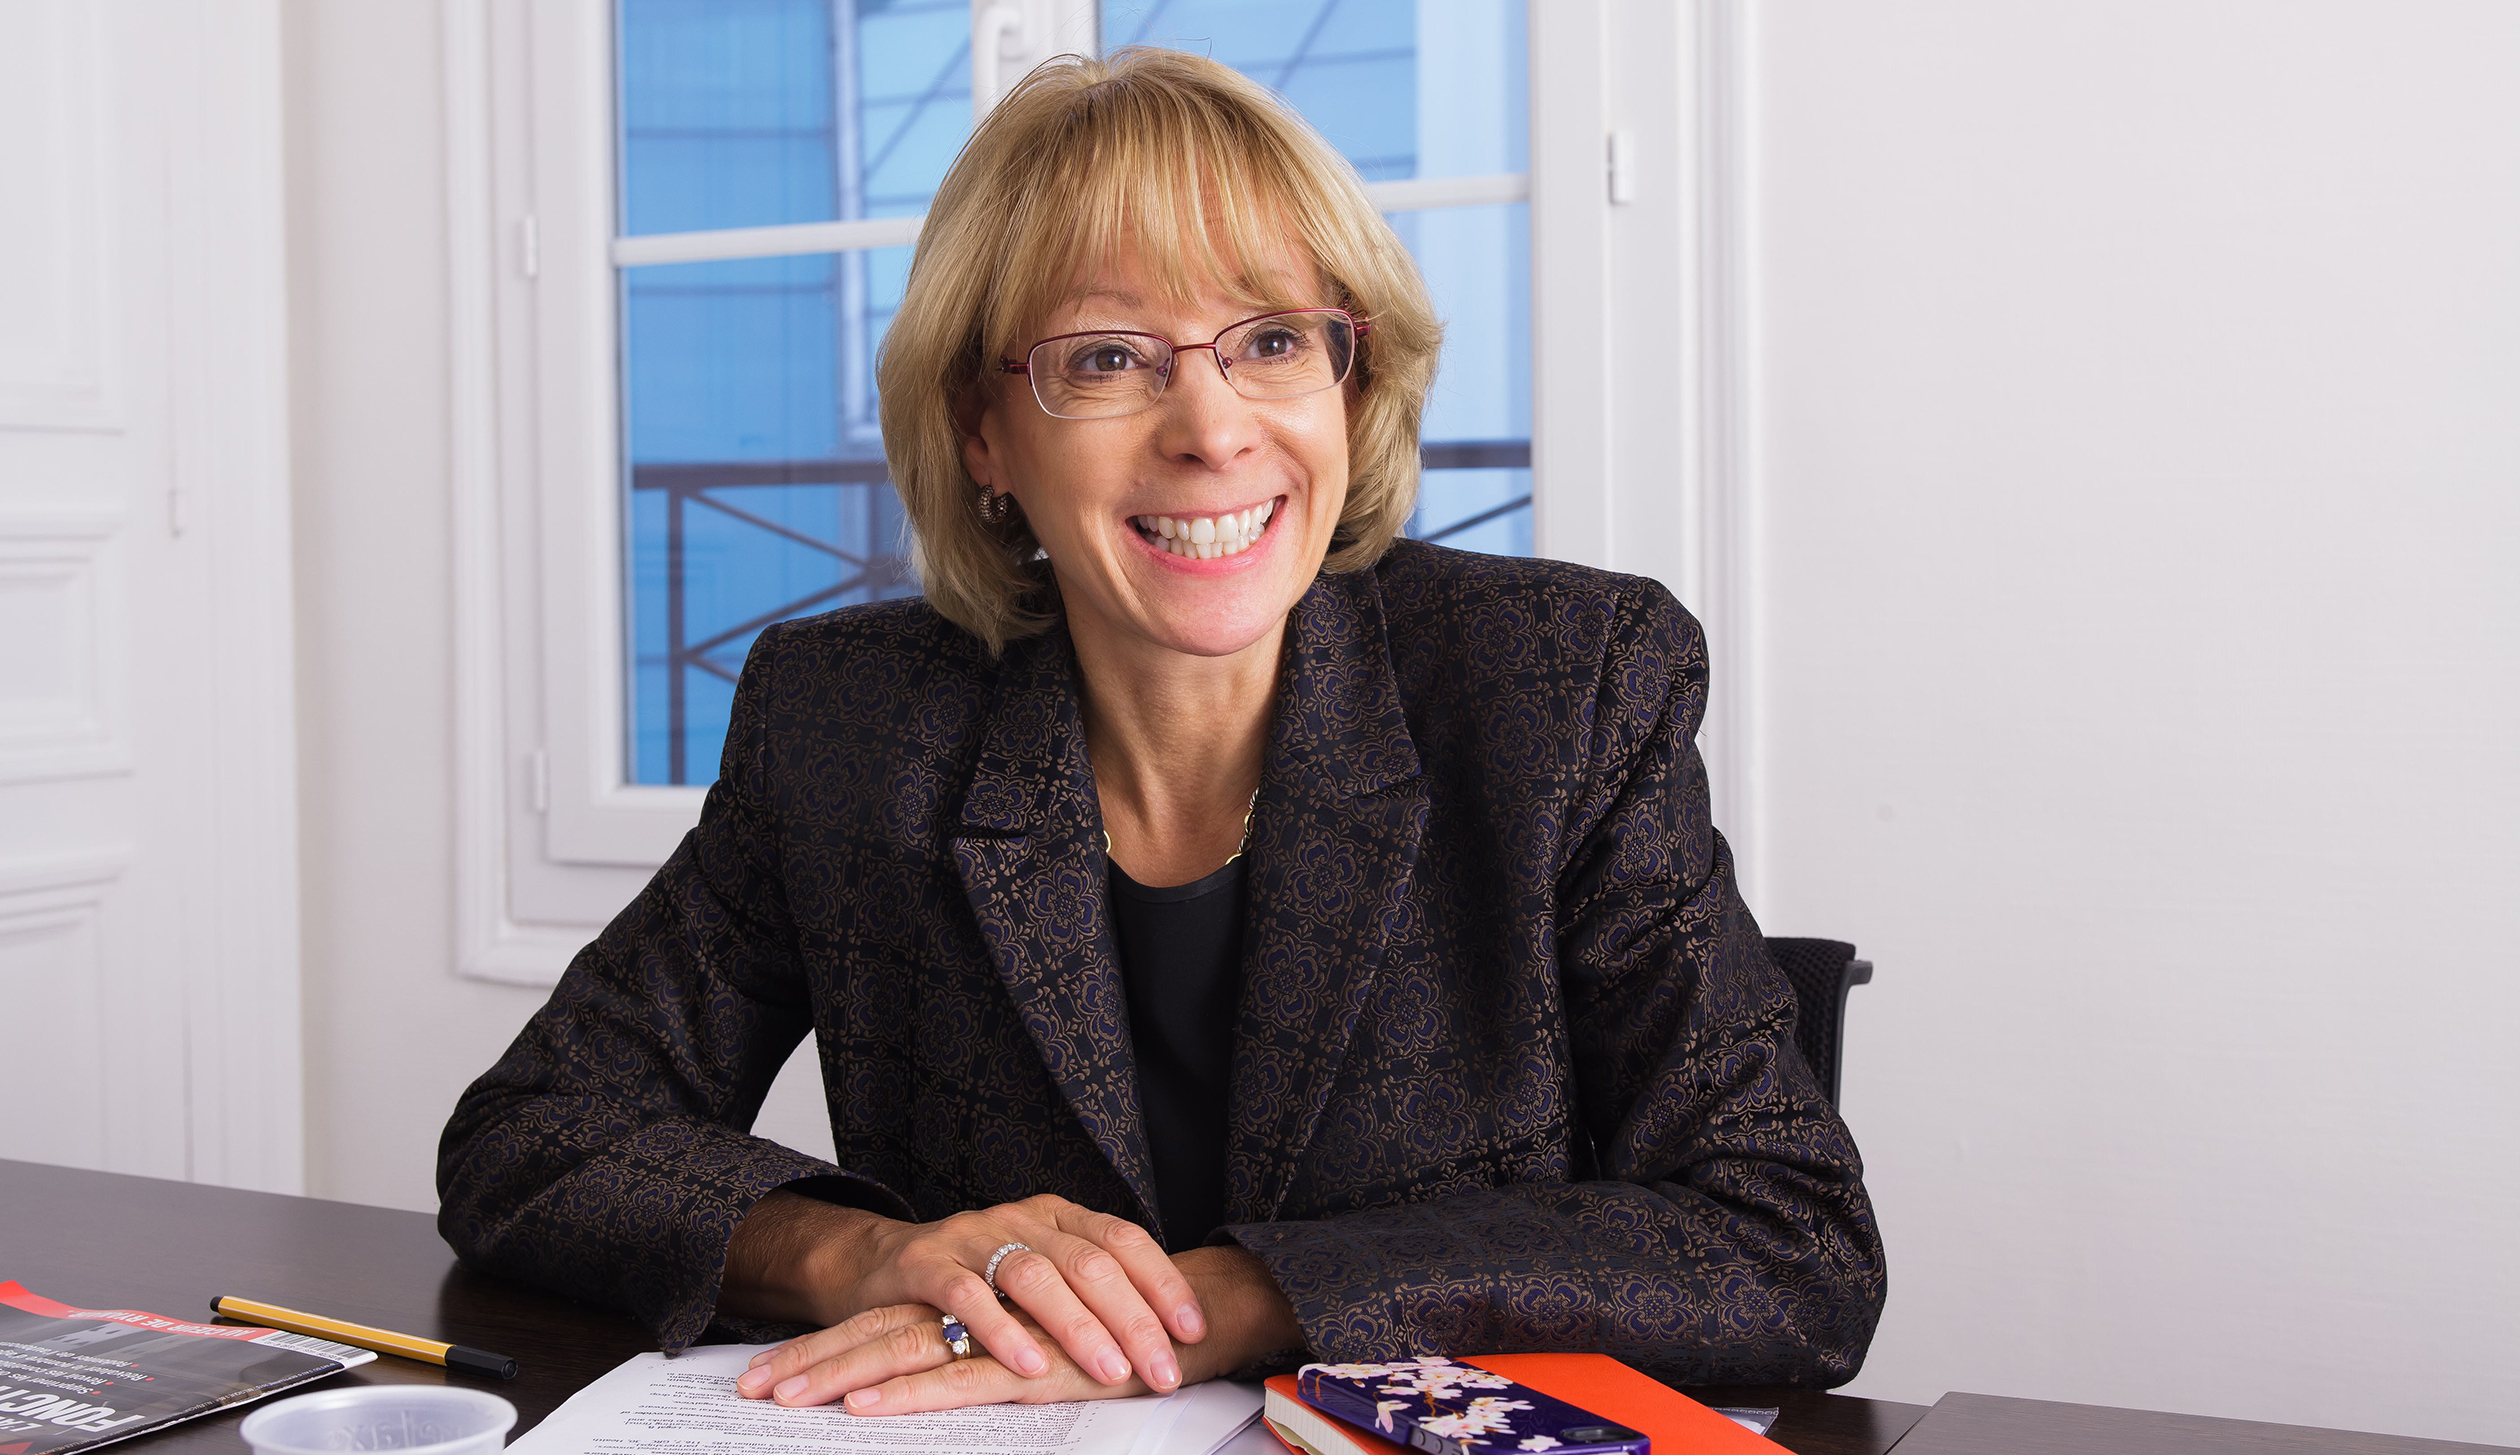 Nancy McKinstry, PDG de Wolters Kluwer